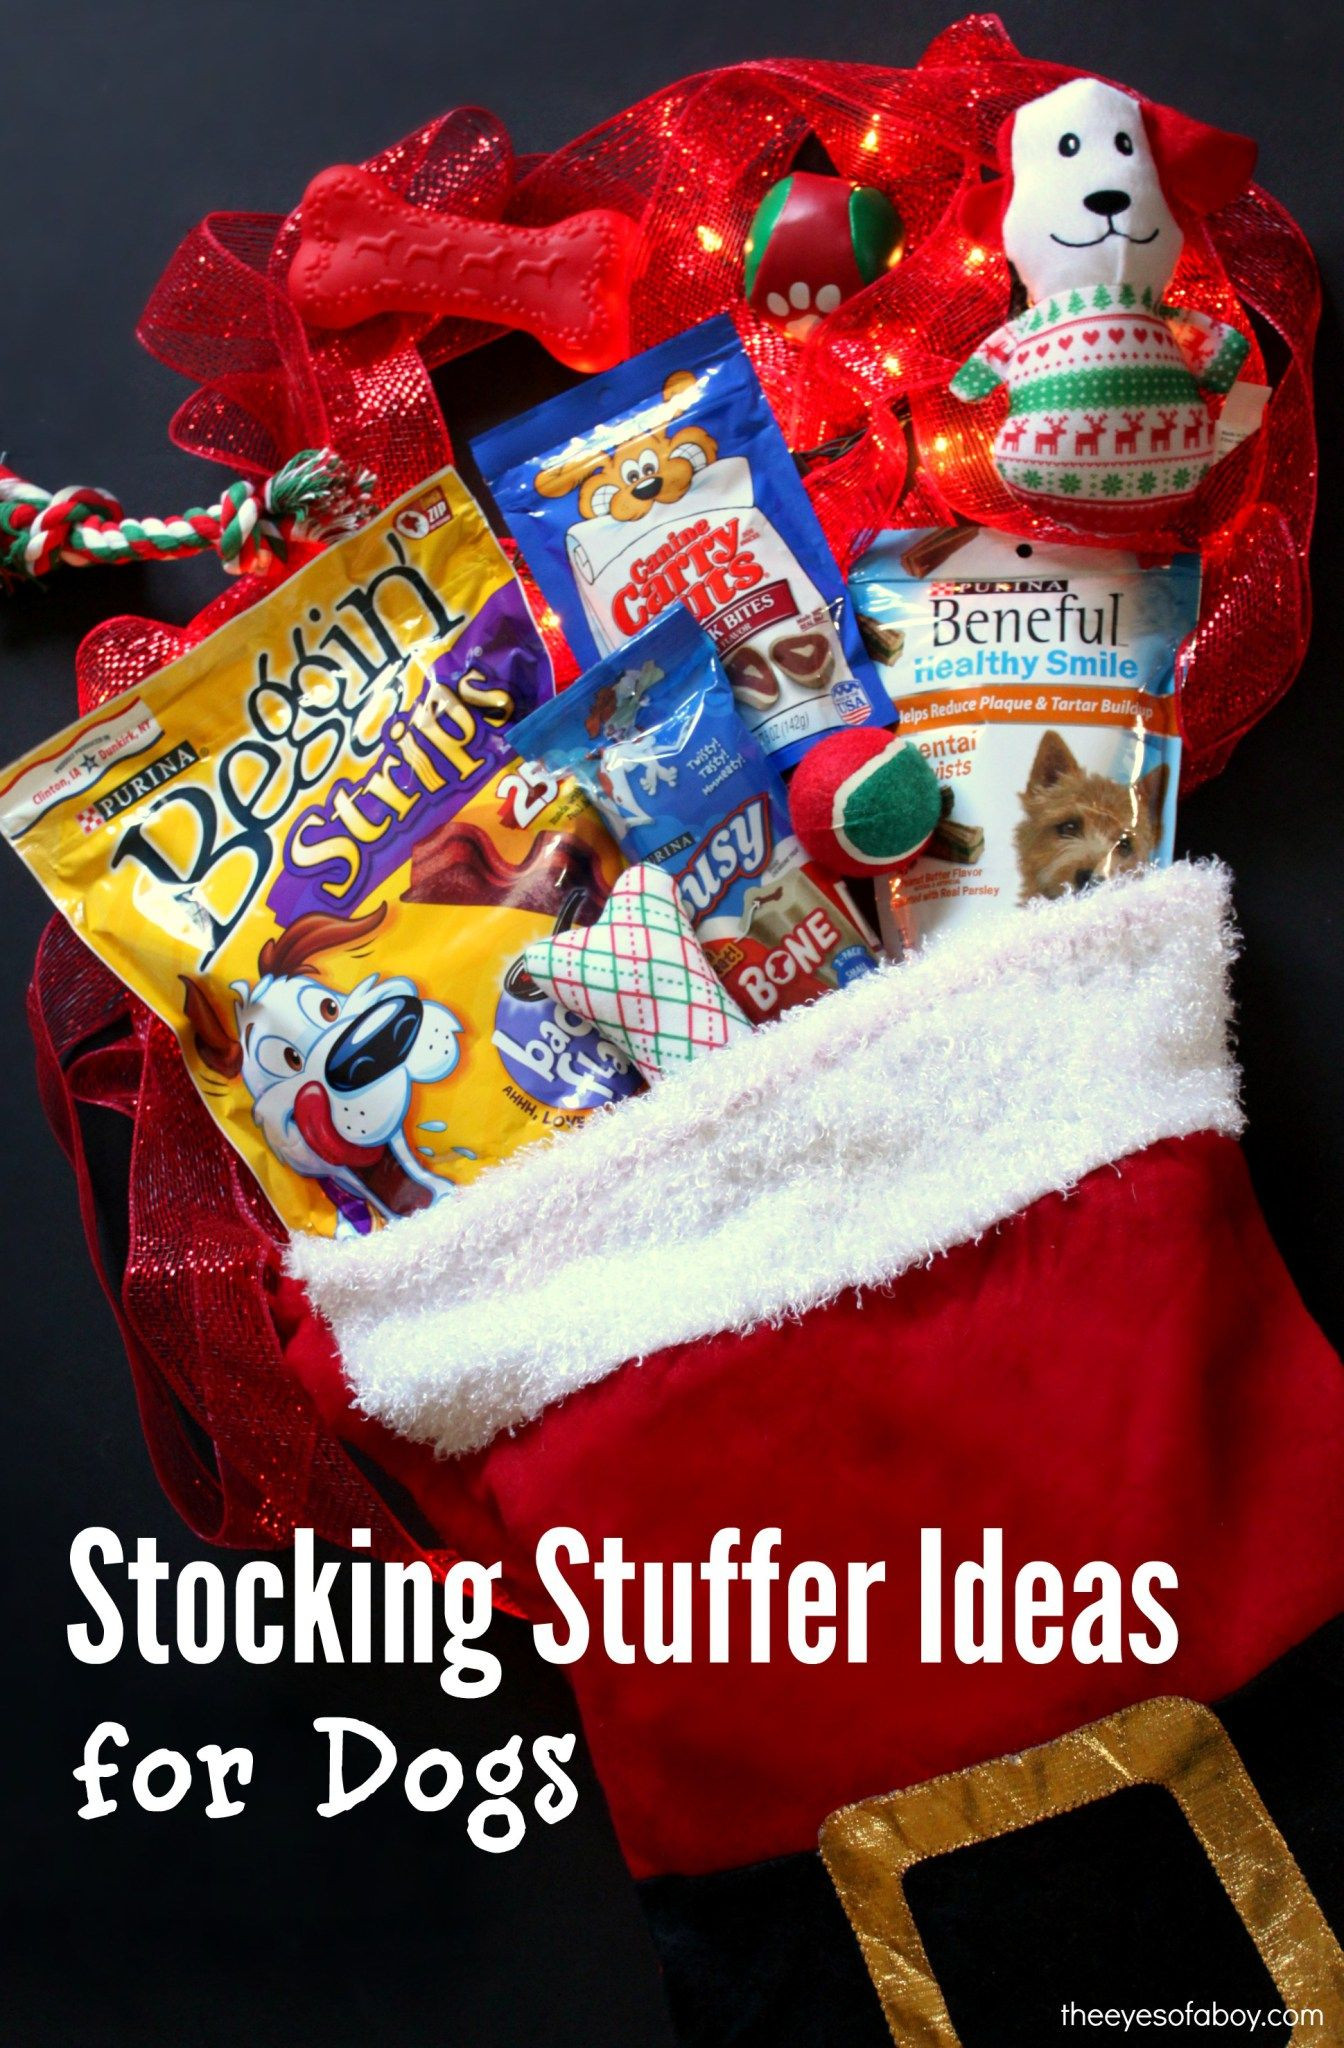 Best ideas about Dog Christmas Gift Ideas . Save or Pin Stocking Stuffer ideas for Christmas for Dogs ts Now.